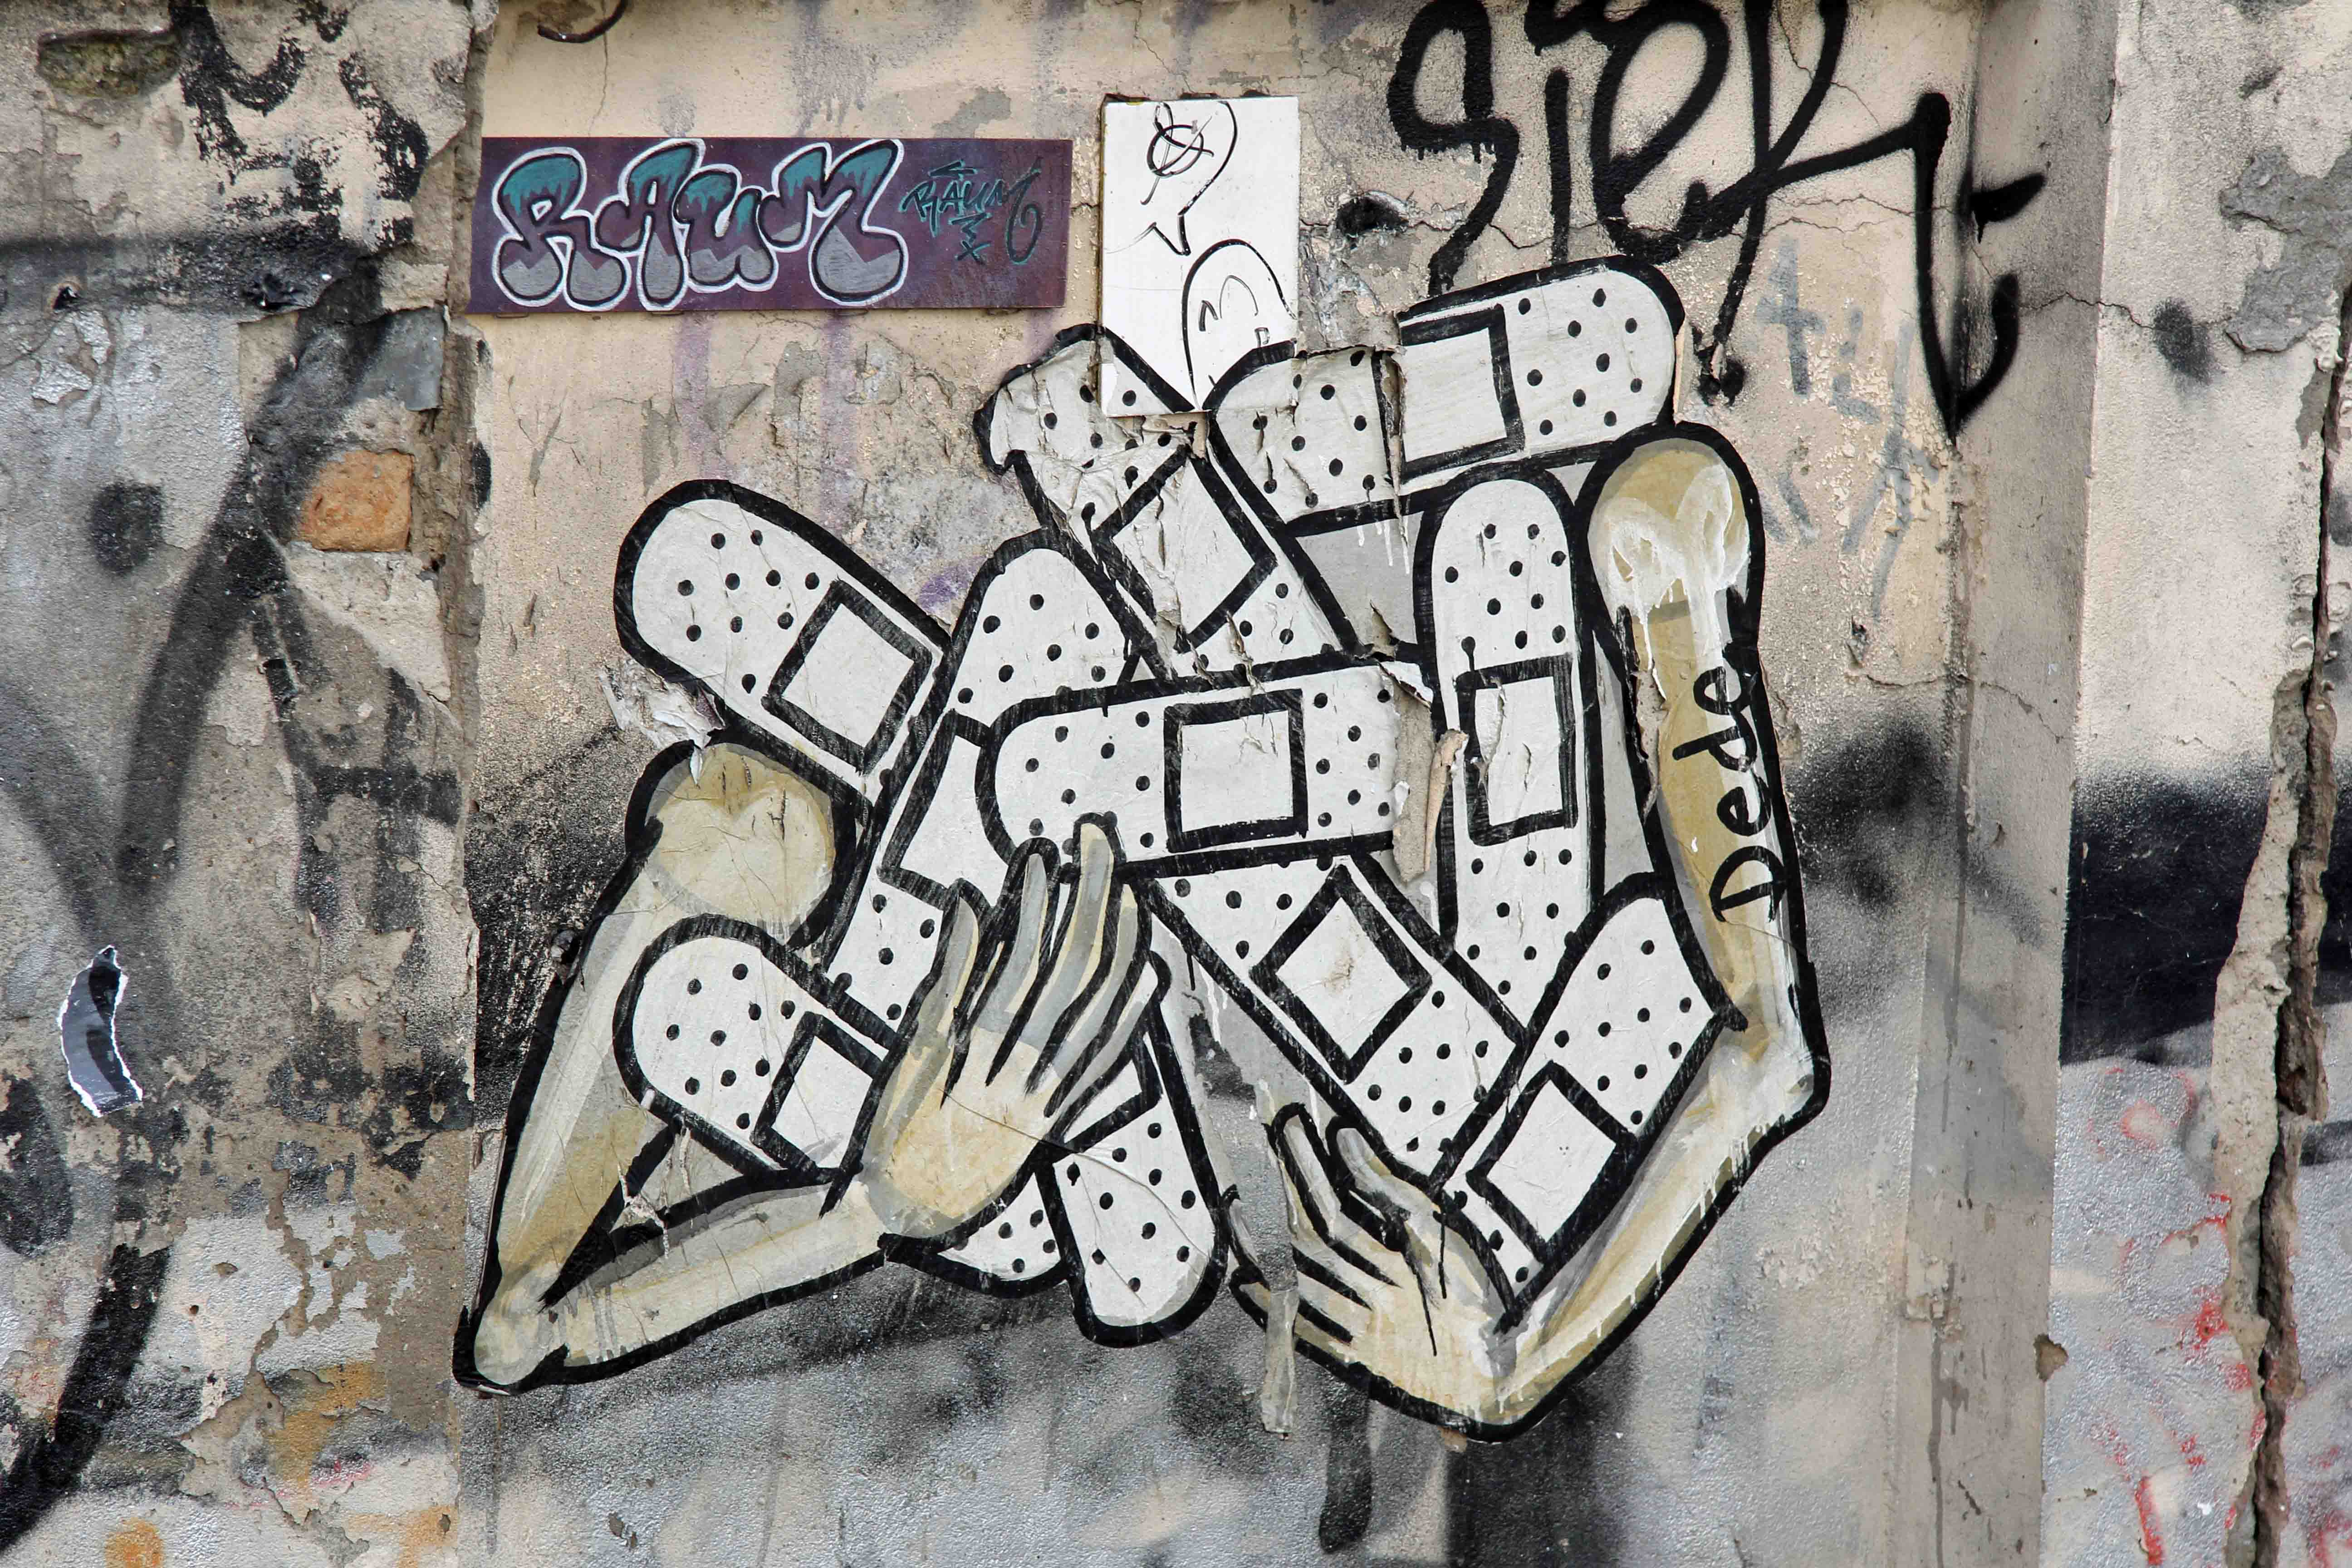 Arms Full of Plasters (Caffeine) - Street Art by Dede in Berlin